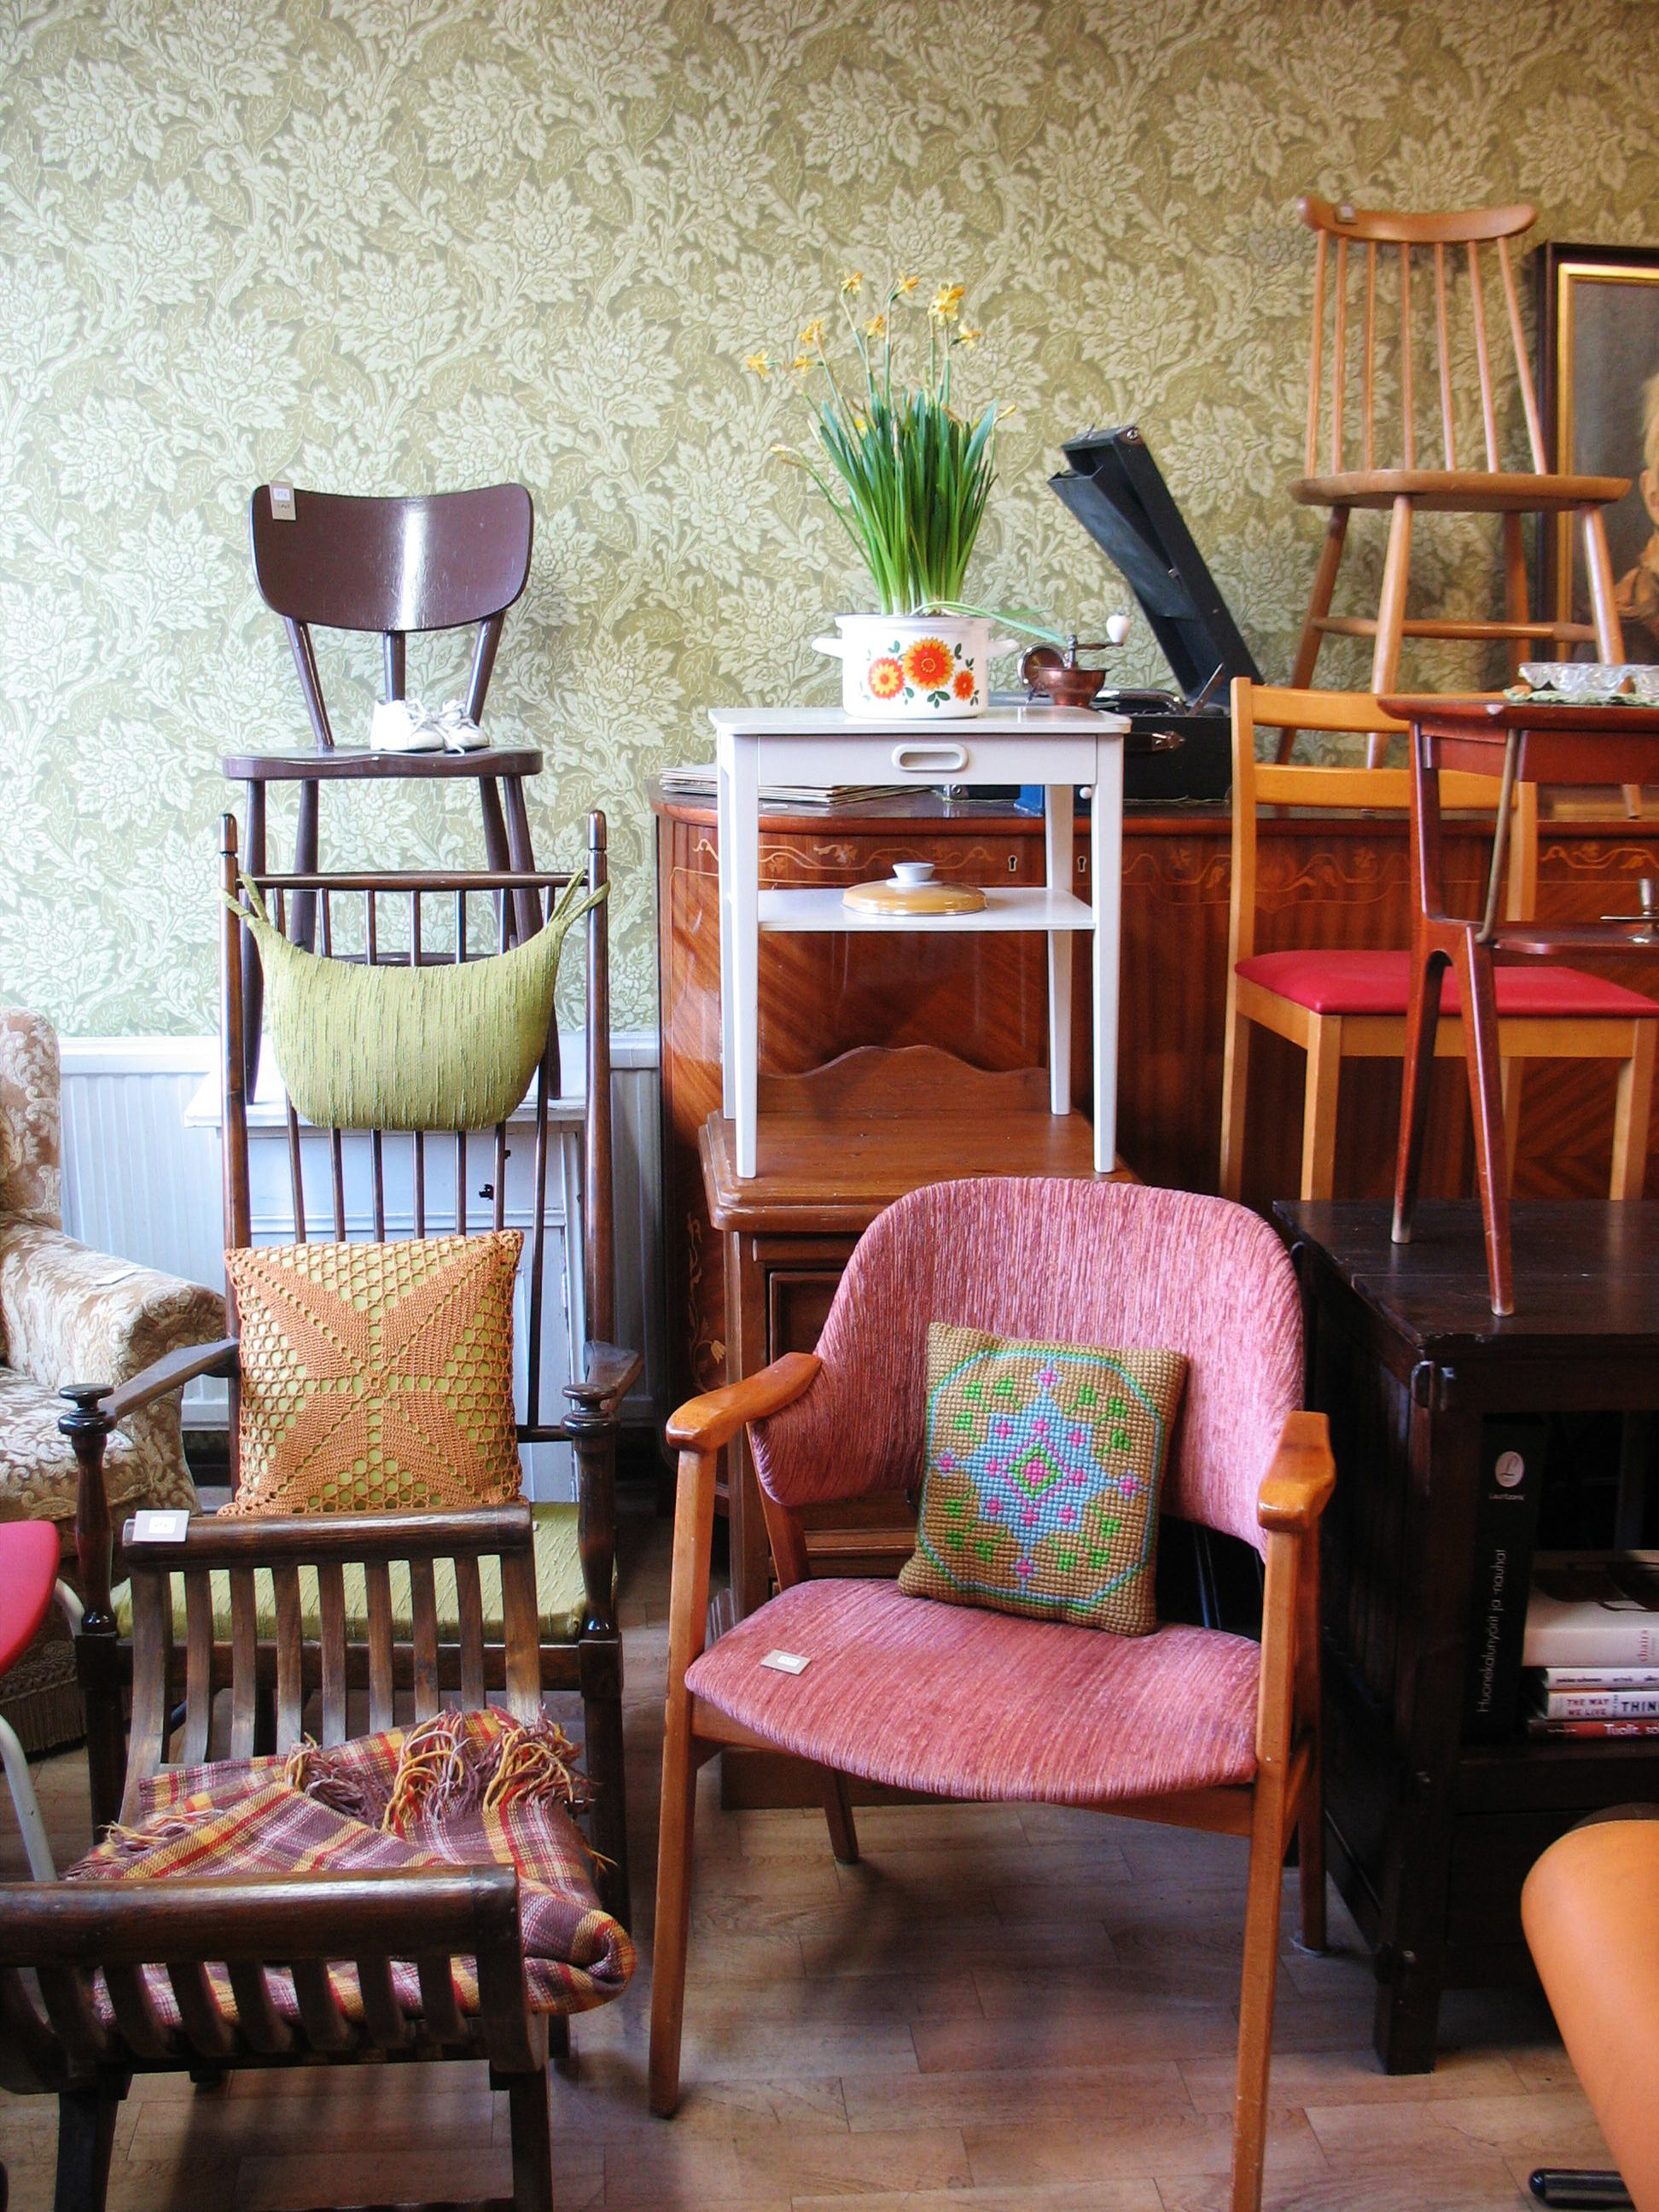 Vintage chairs!